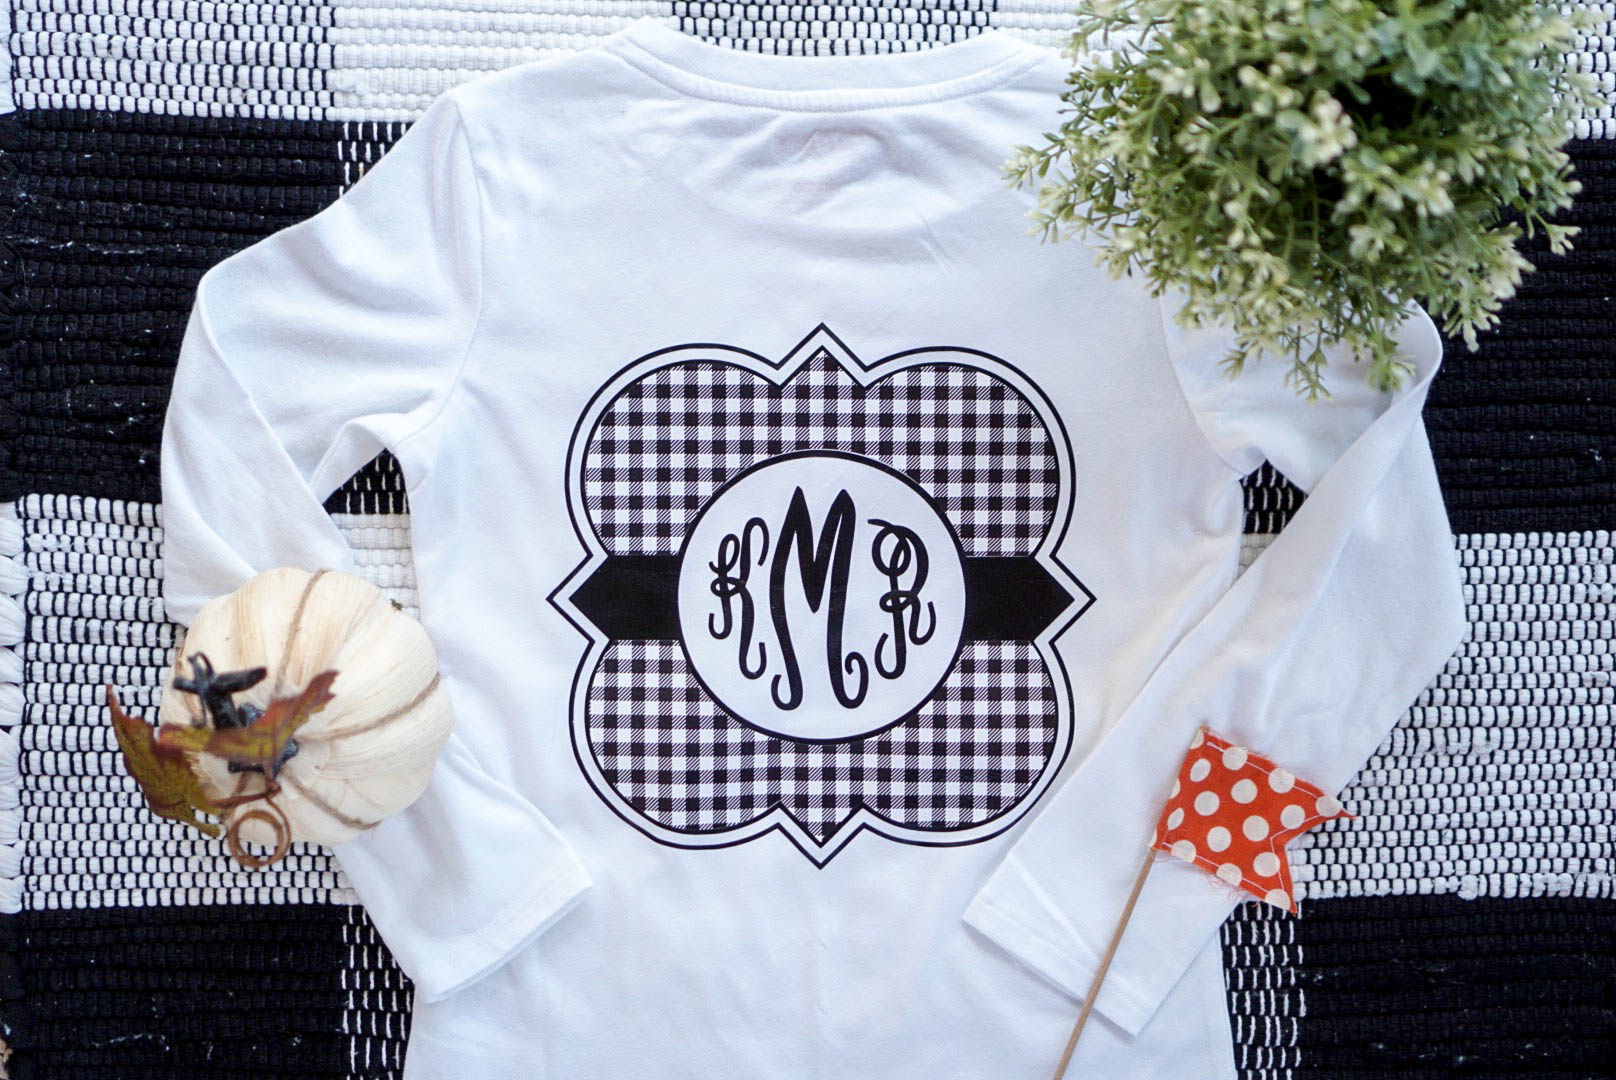 Monogrammed T Shirt With Expressions Vinyl Kayla Makes